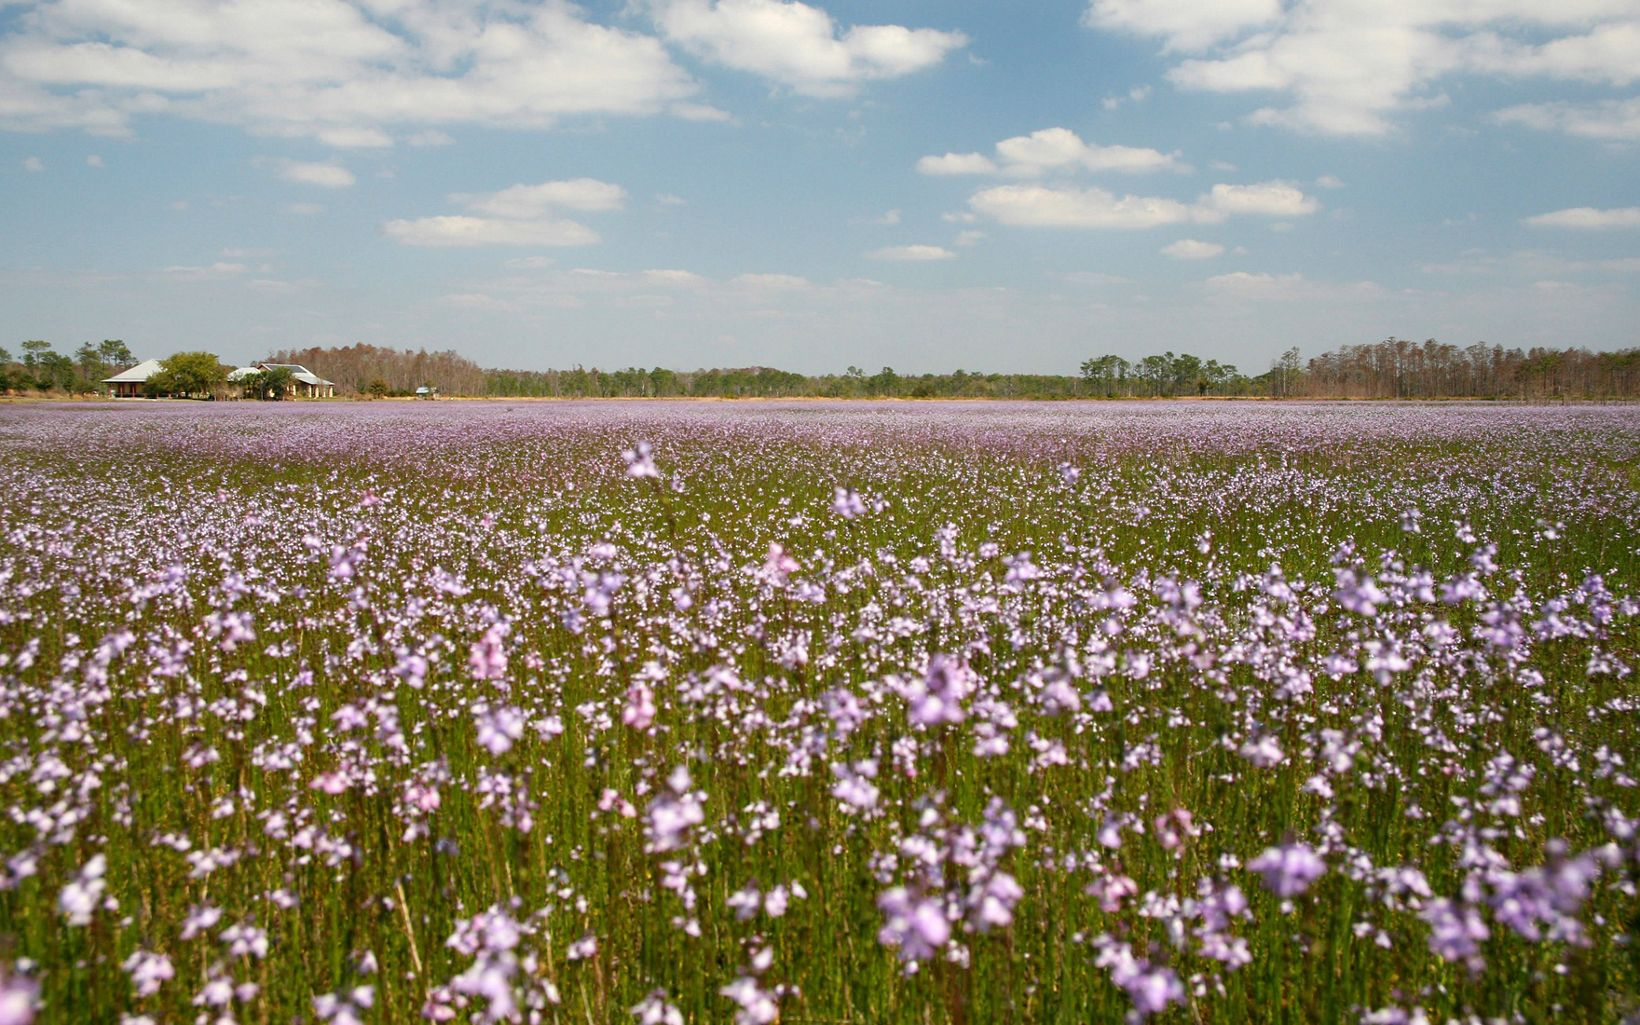 Field of blooming flowers